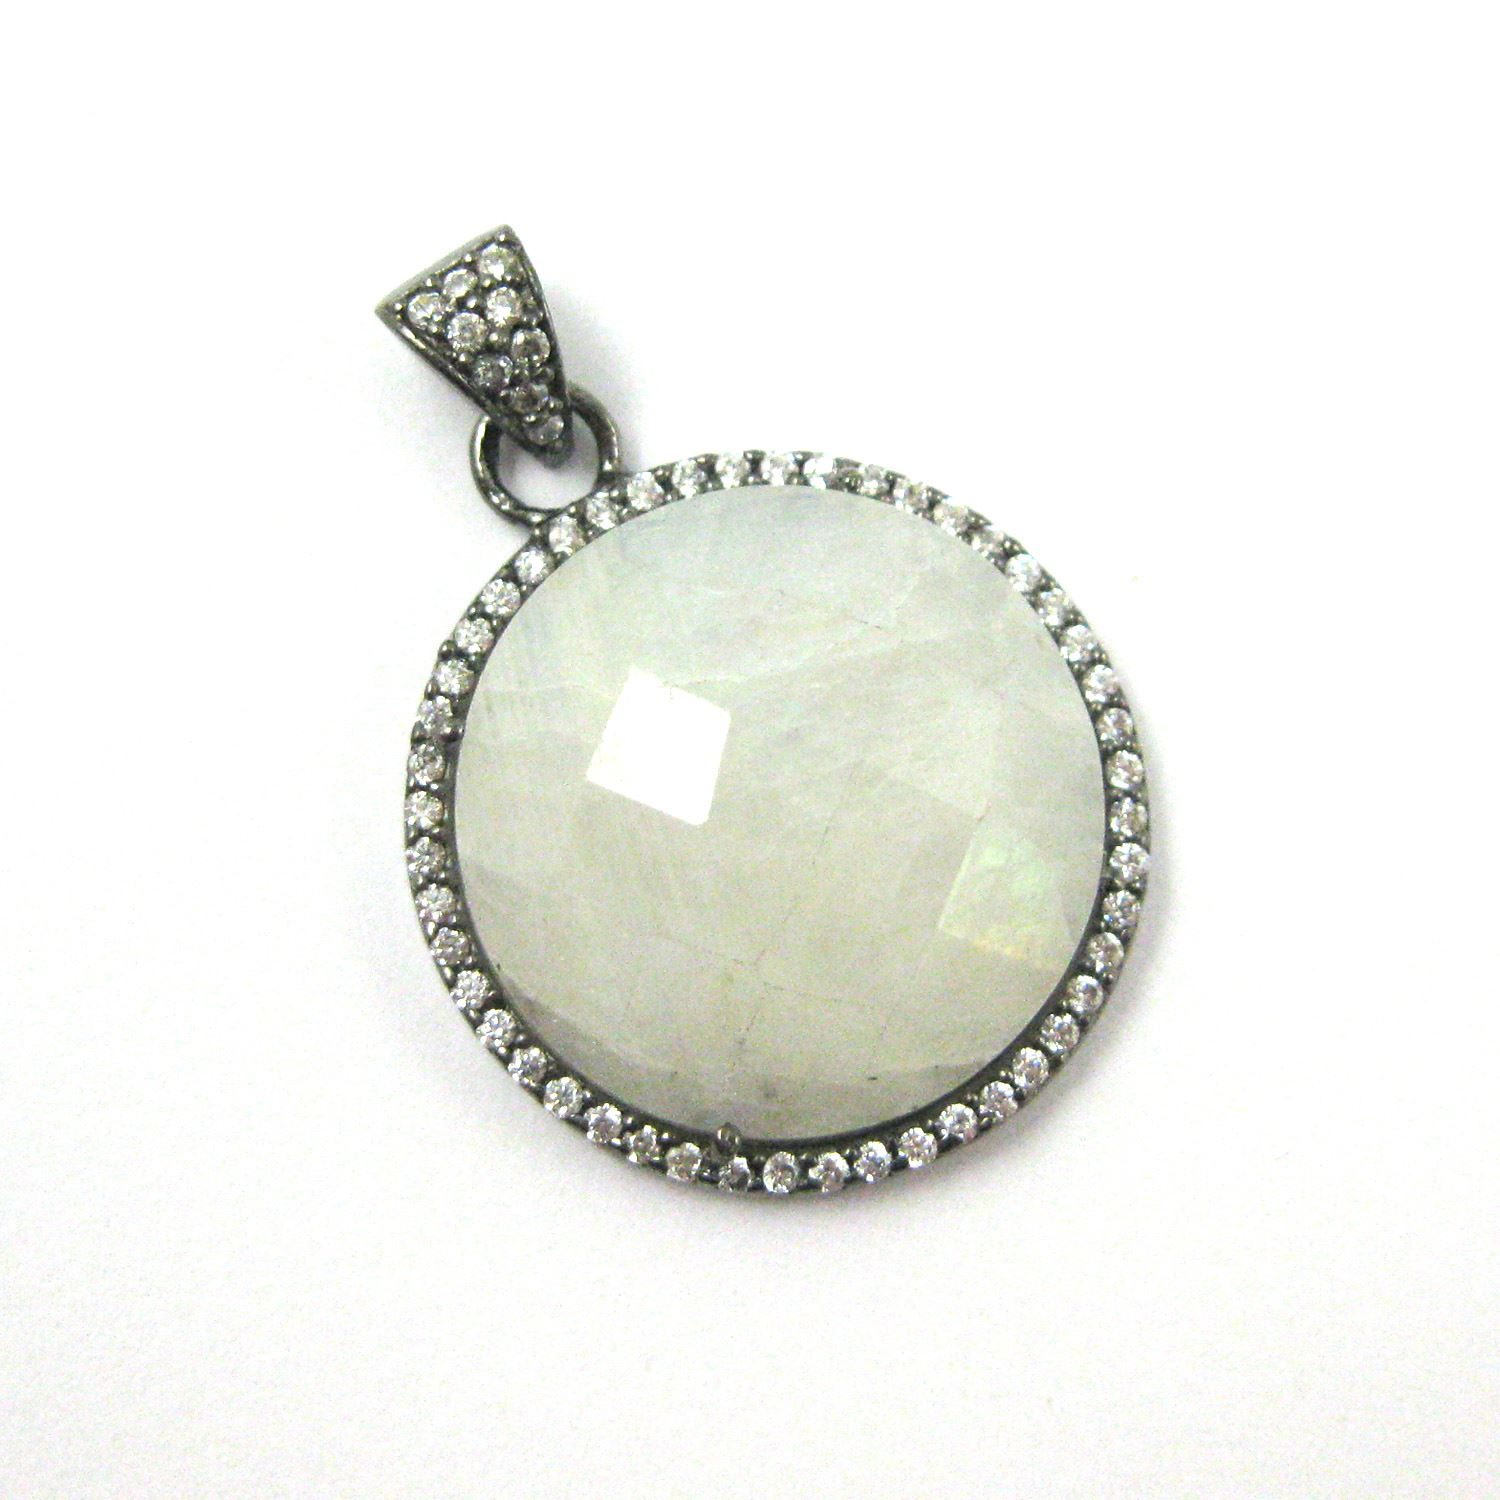 Oxidized Sterling Silver Pave Bezel Gemstone Pendant - Cubic Zirconia Pave Setting -  Round Faceted Stone- Moonstone - 21mm